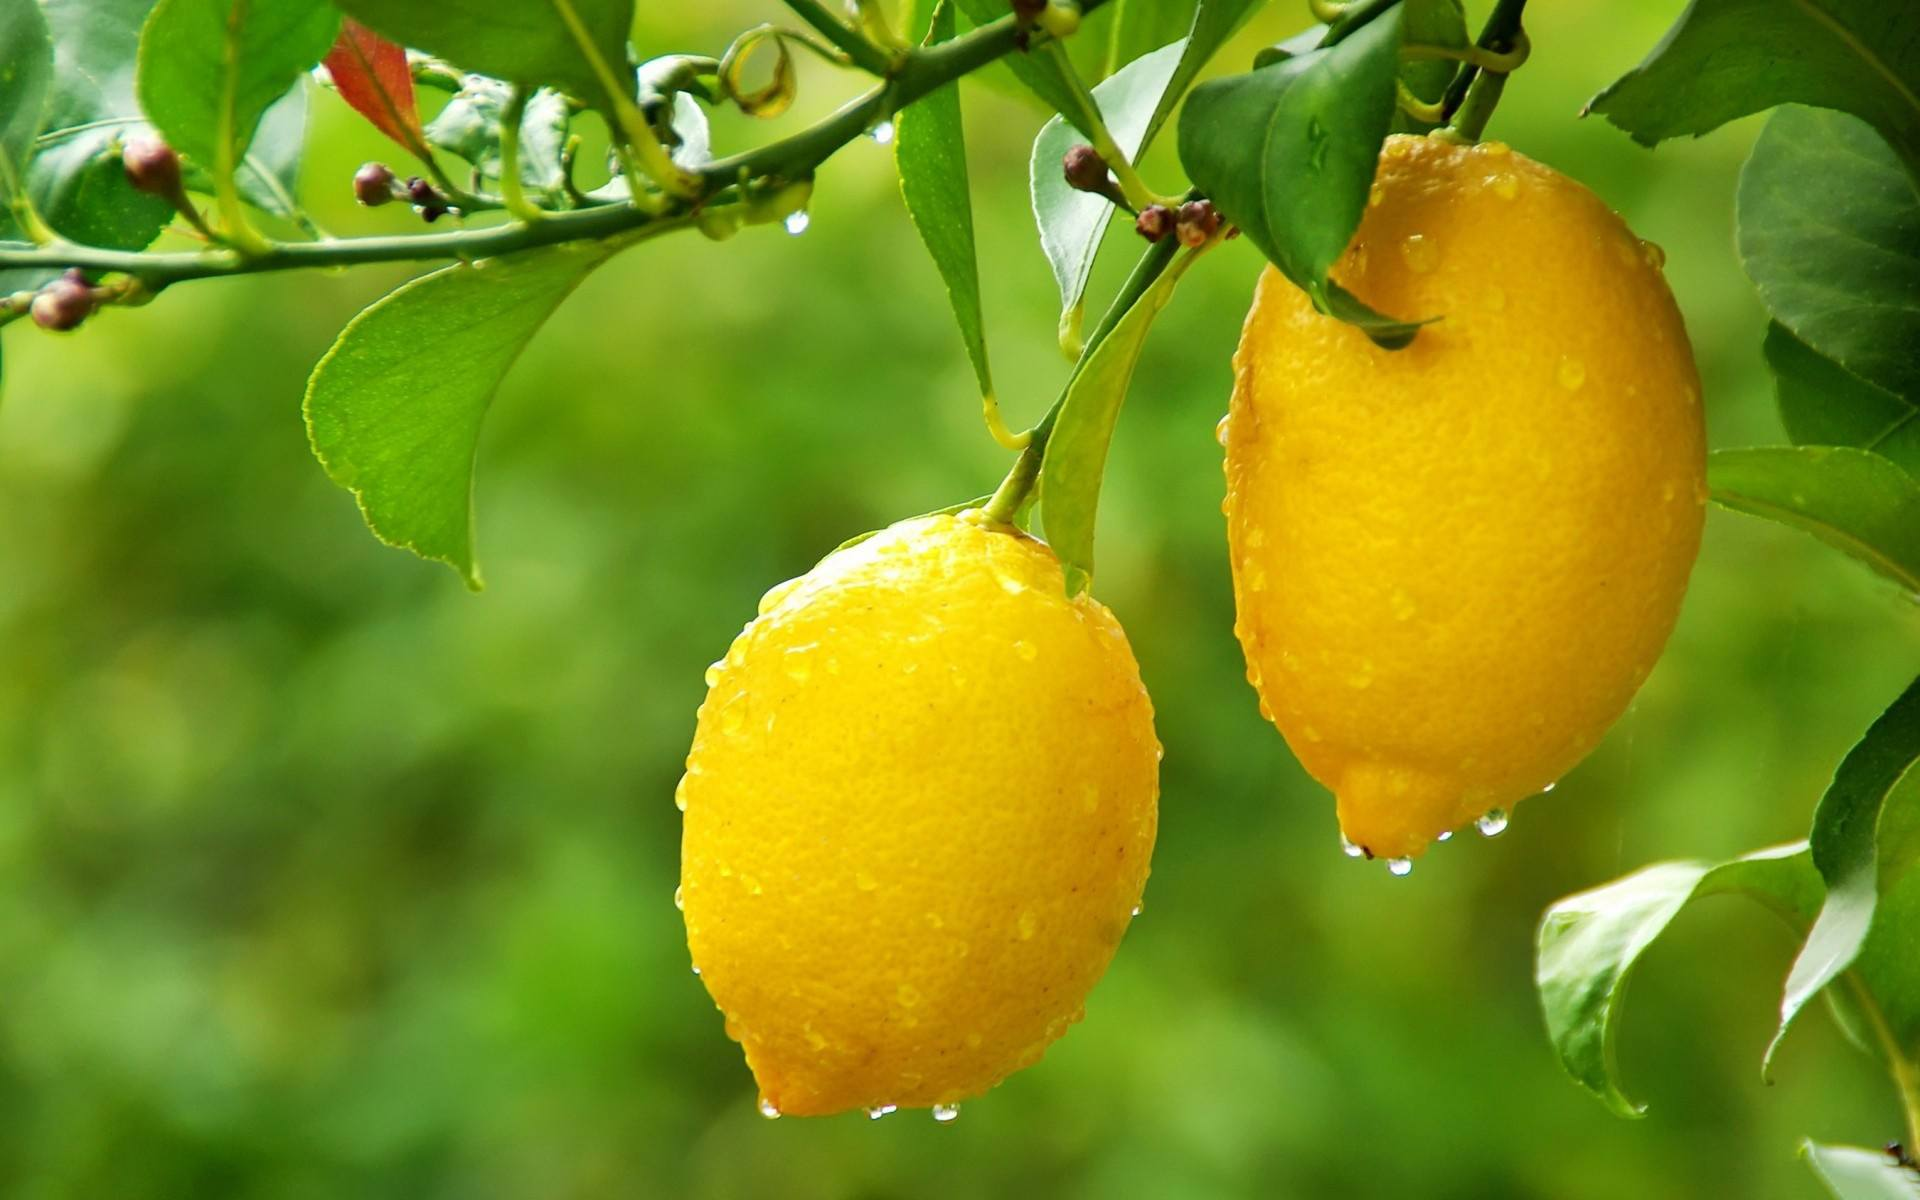 7-fruits that detox our body lemon 2